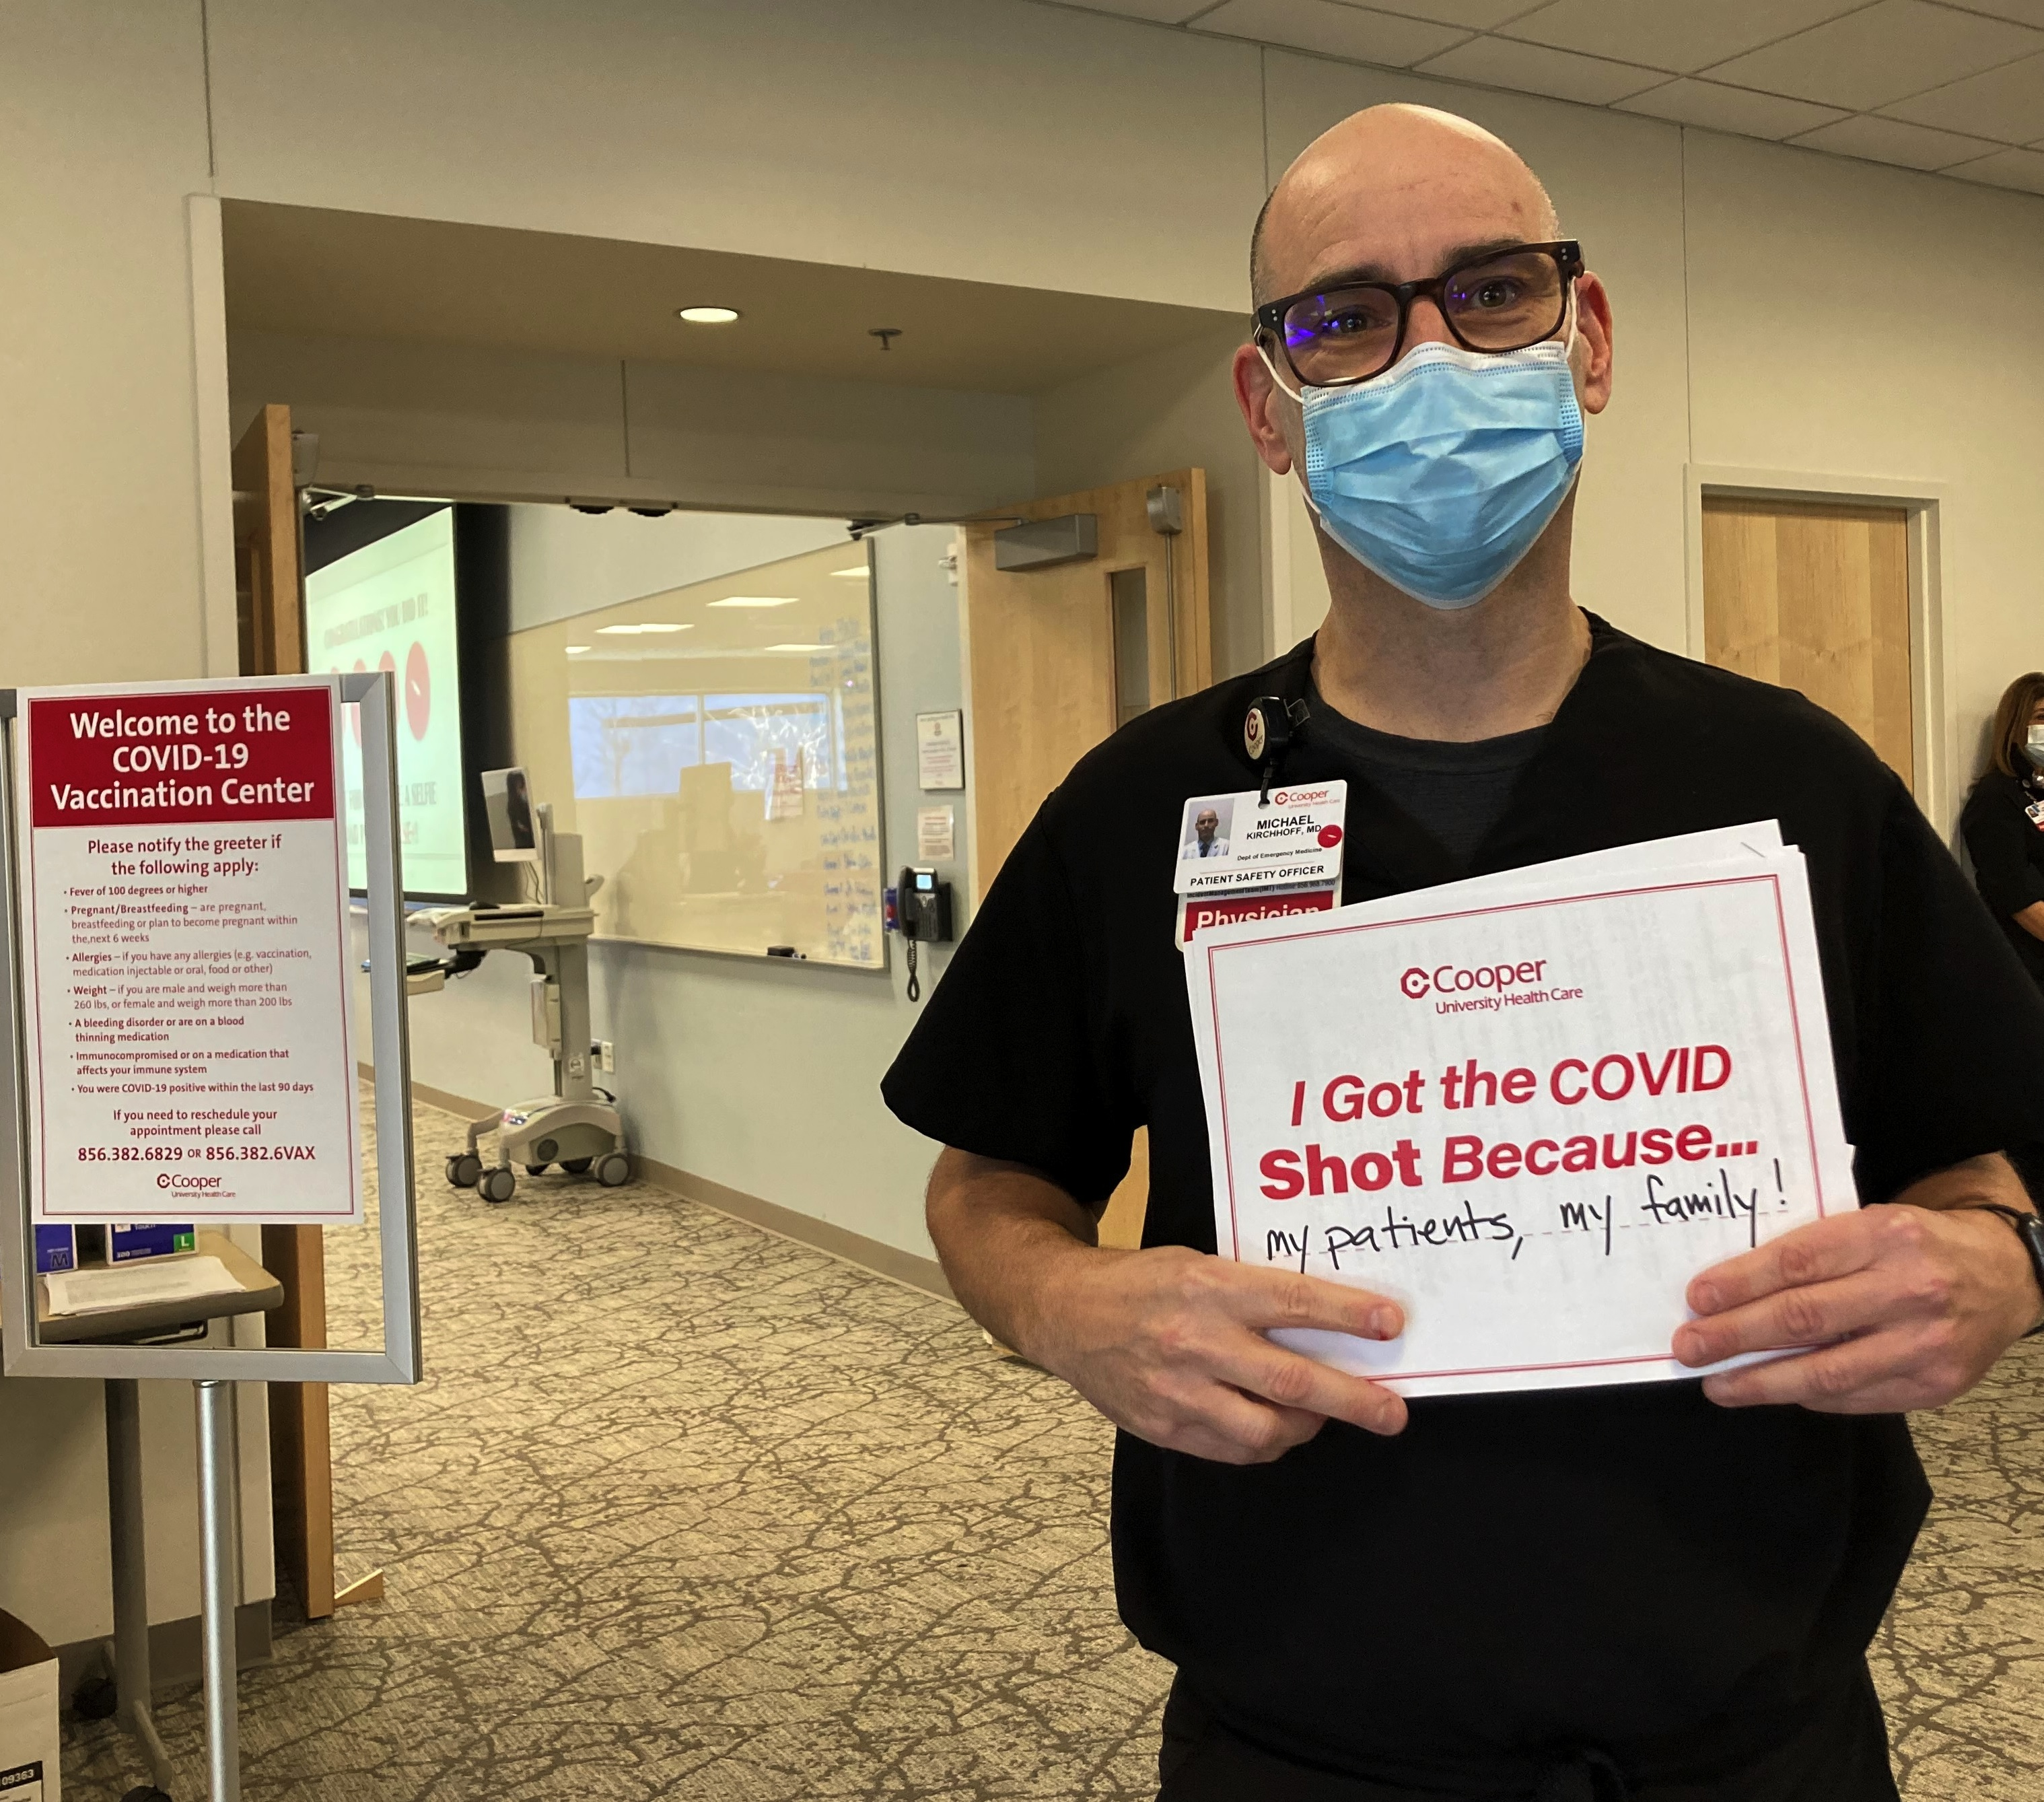 Michael Kirchhoff of Cooper University Health Care poses for a photo